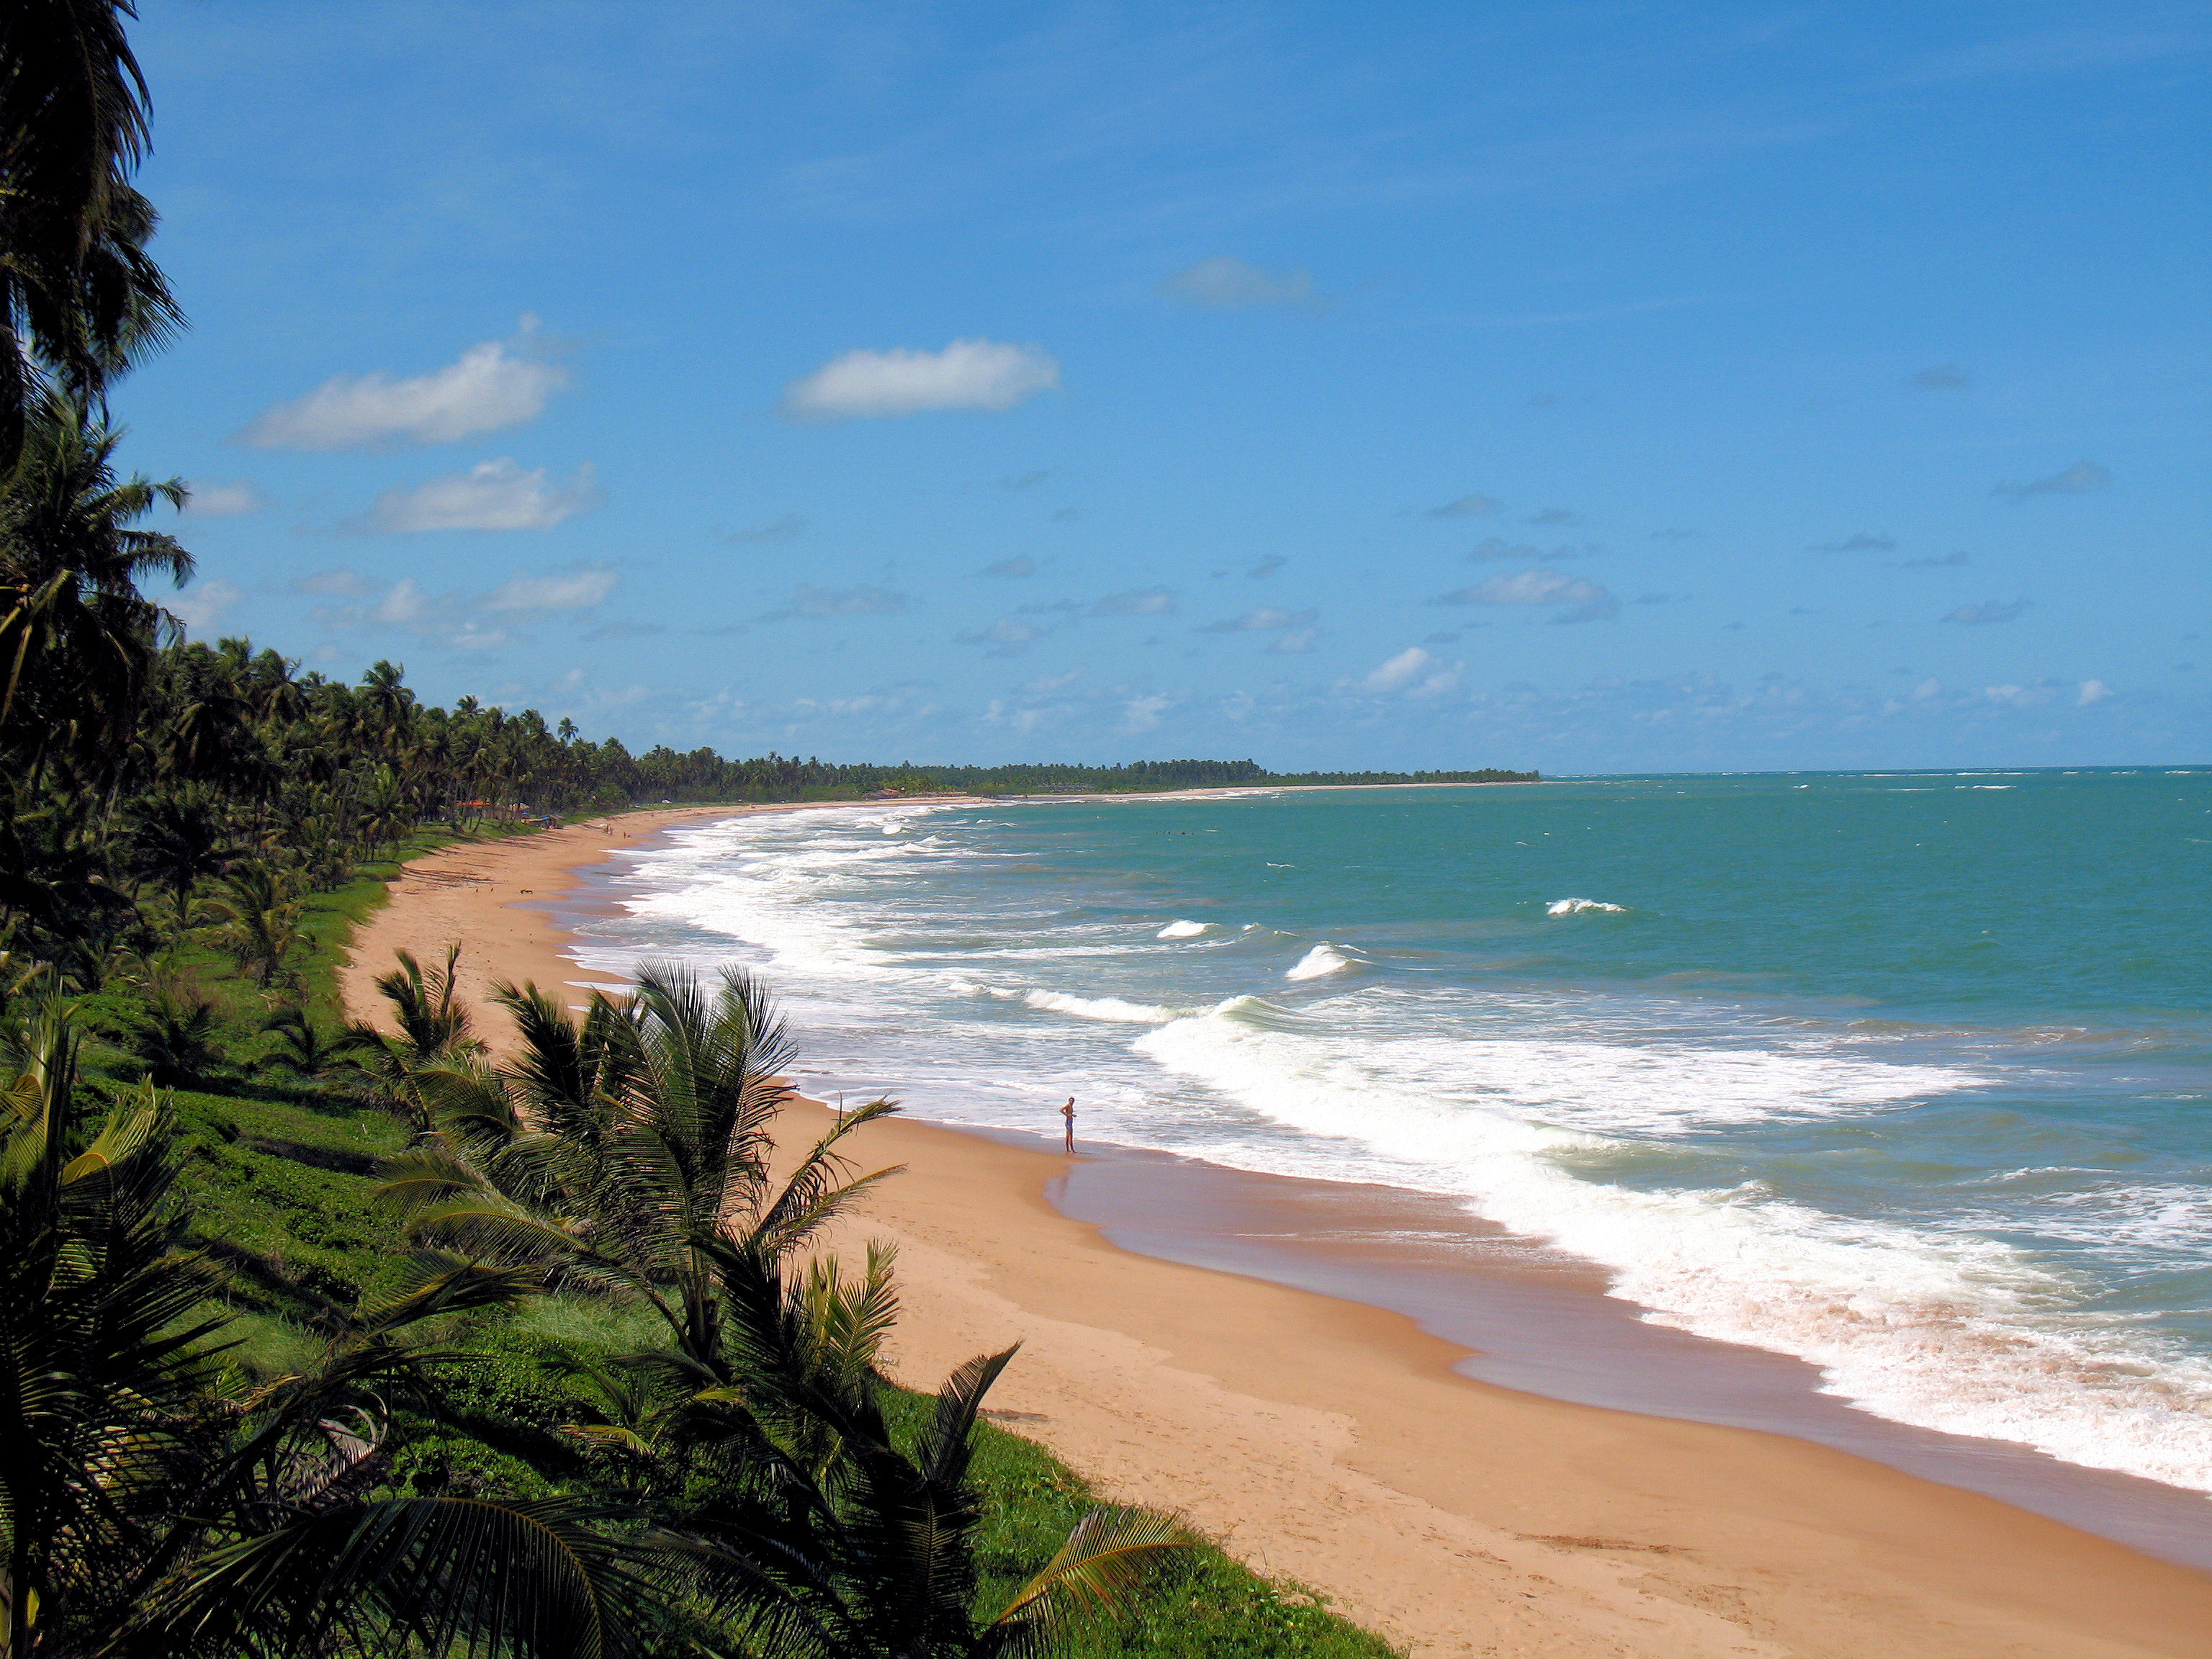 This palm-lined coast starts at the north edge of Maceió and goes northward